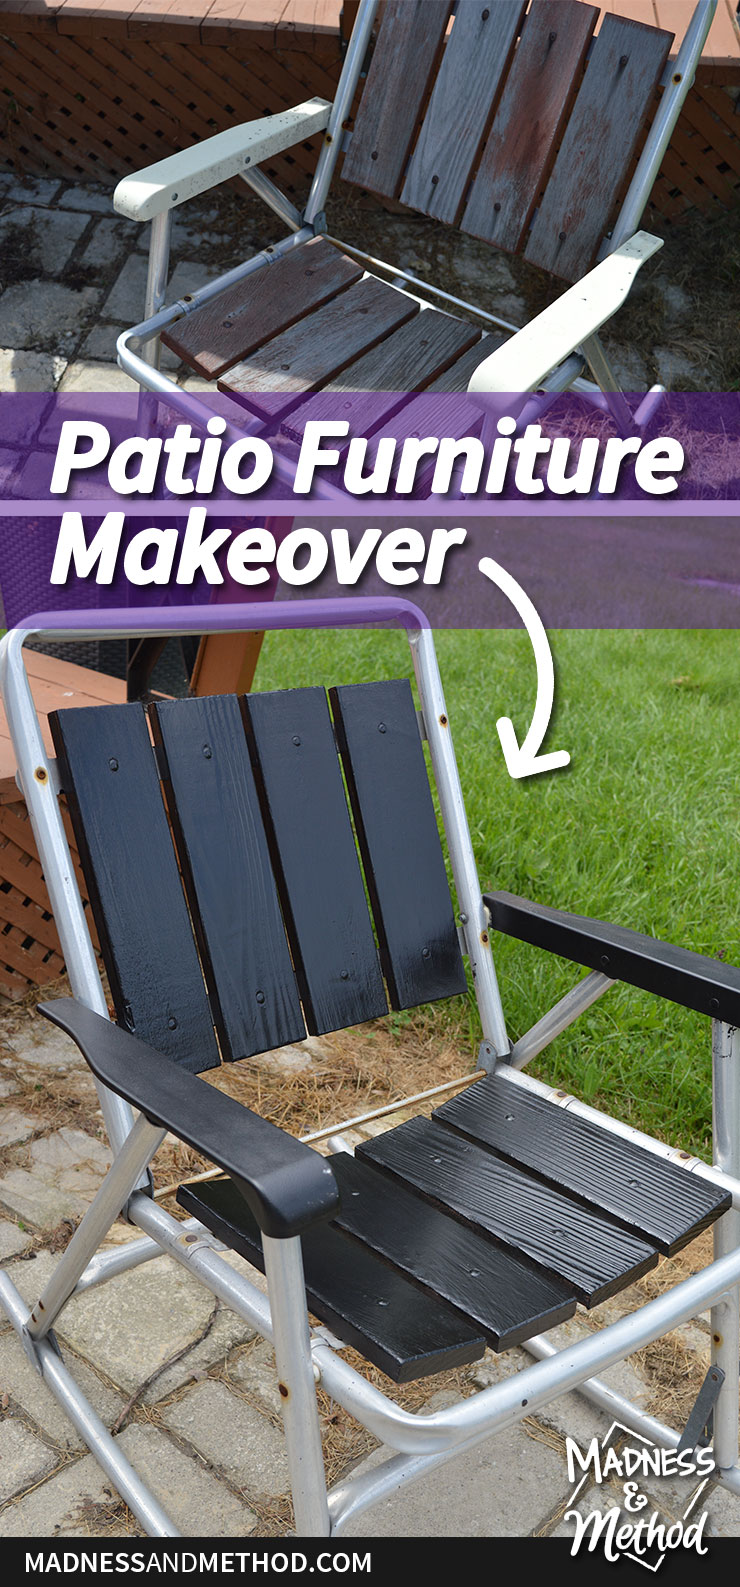 Patio furniture makeover before and after